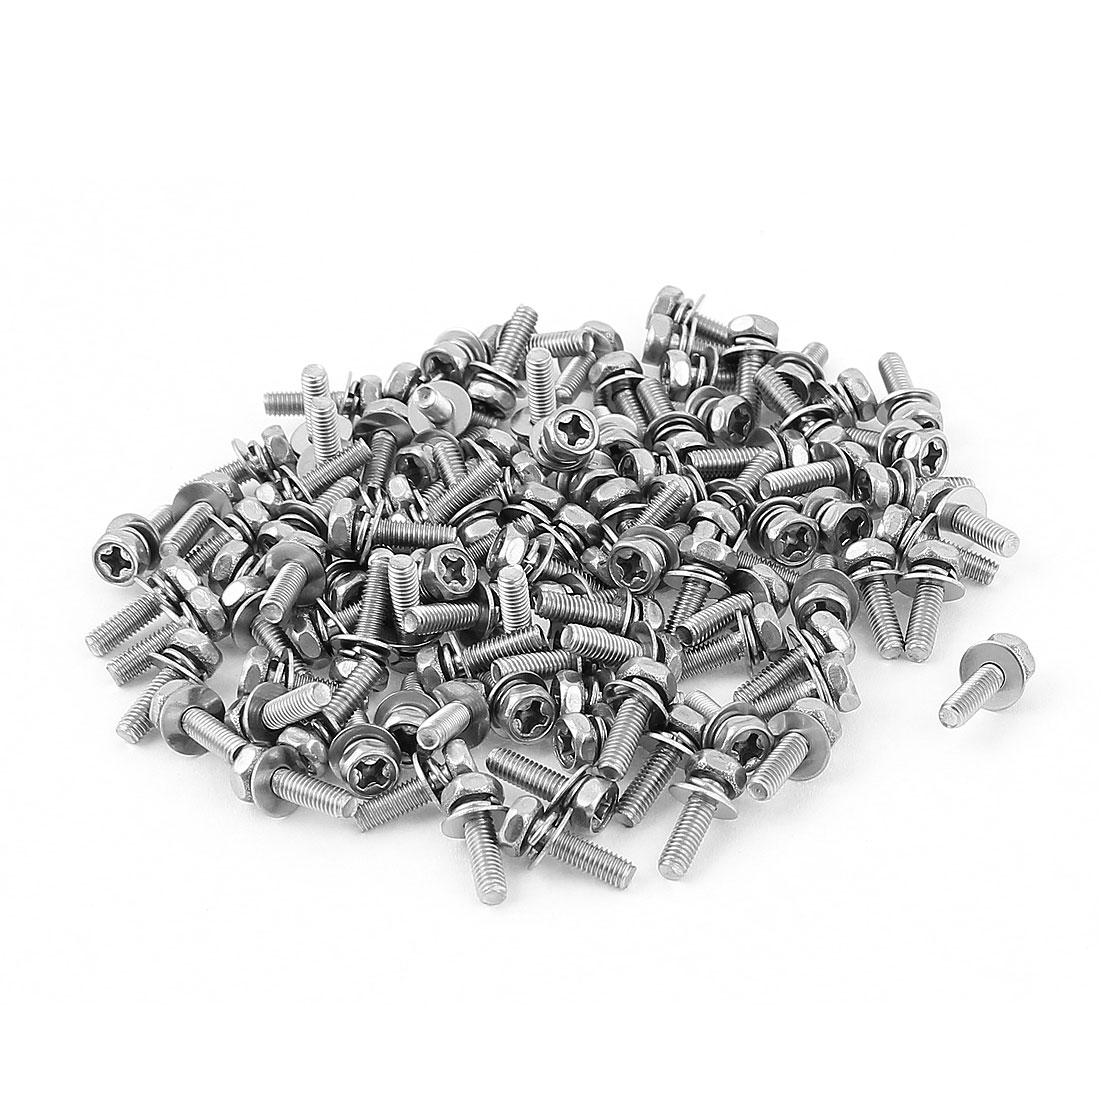 M3x10mmx7mm Hex Bolts Tap Phillips Head Screws 100pcs w Flat Split Washers